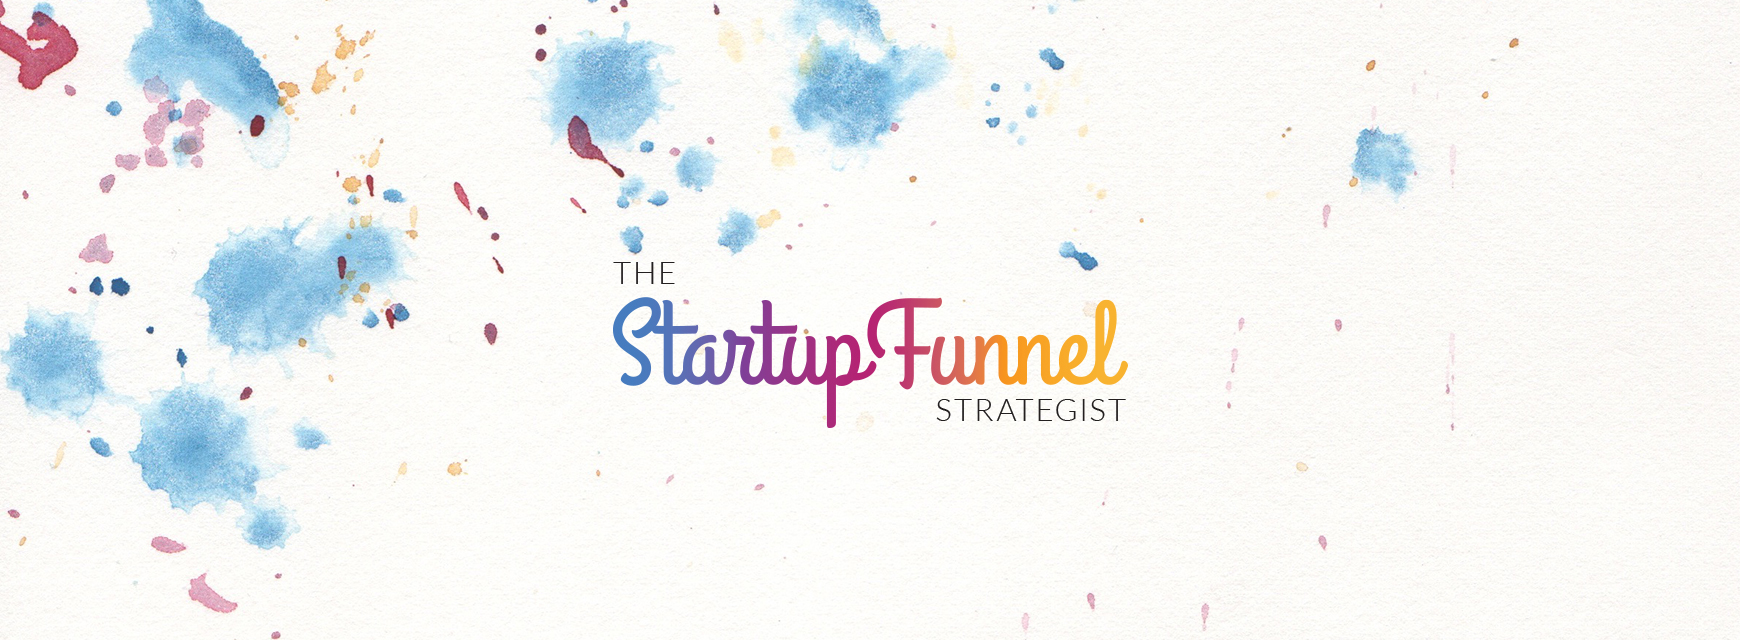 The Startup Funnel Strategist Case Study